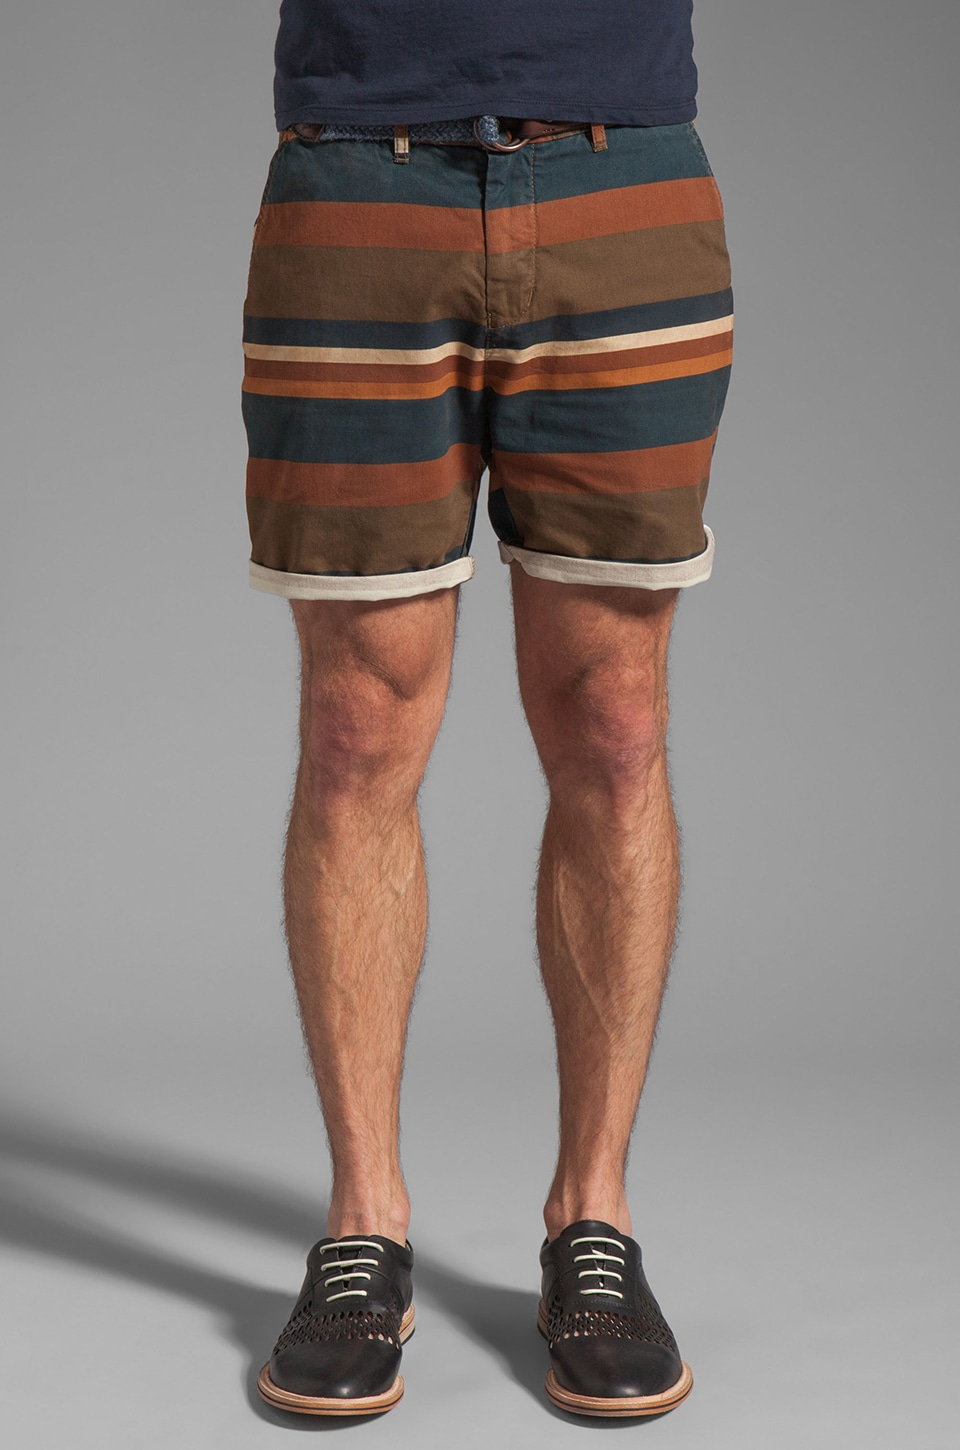 Scotch & Soda Patterned Stripe Short in Brown